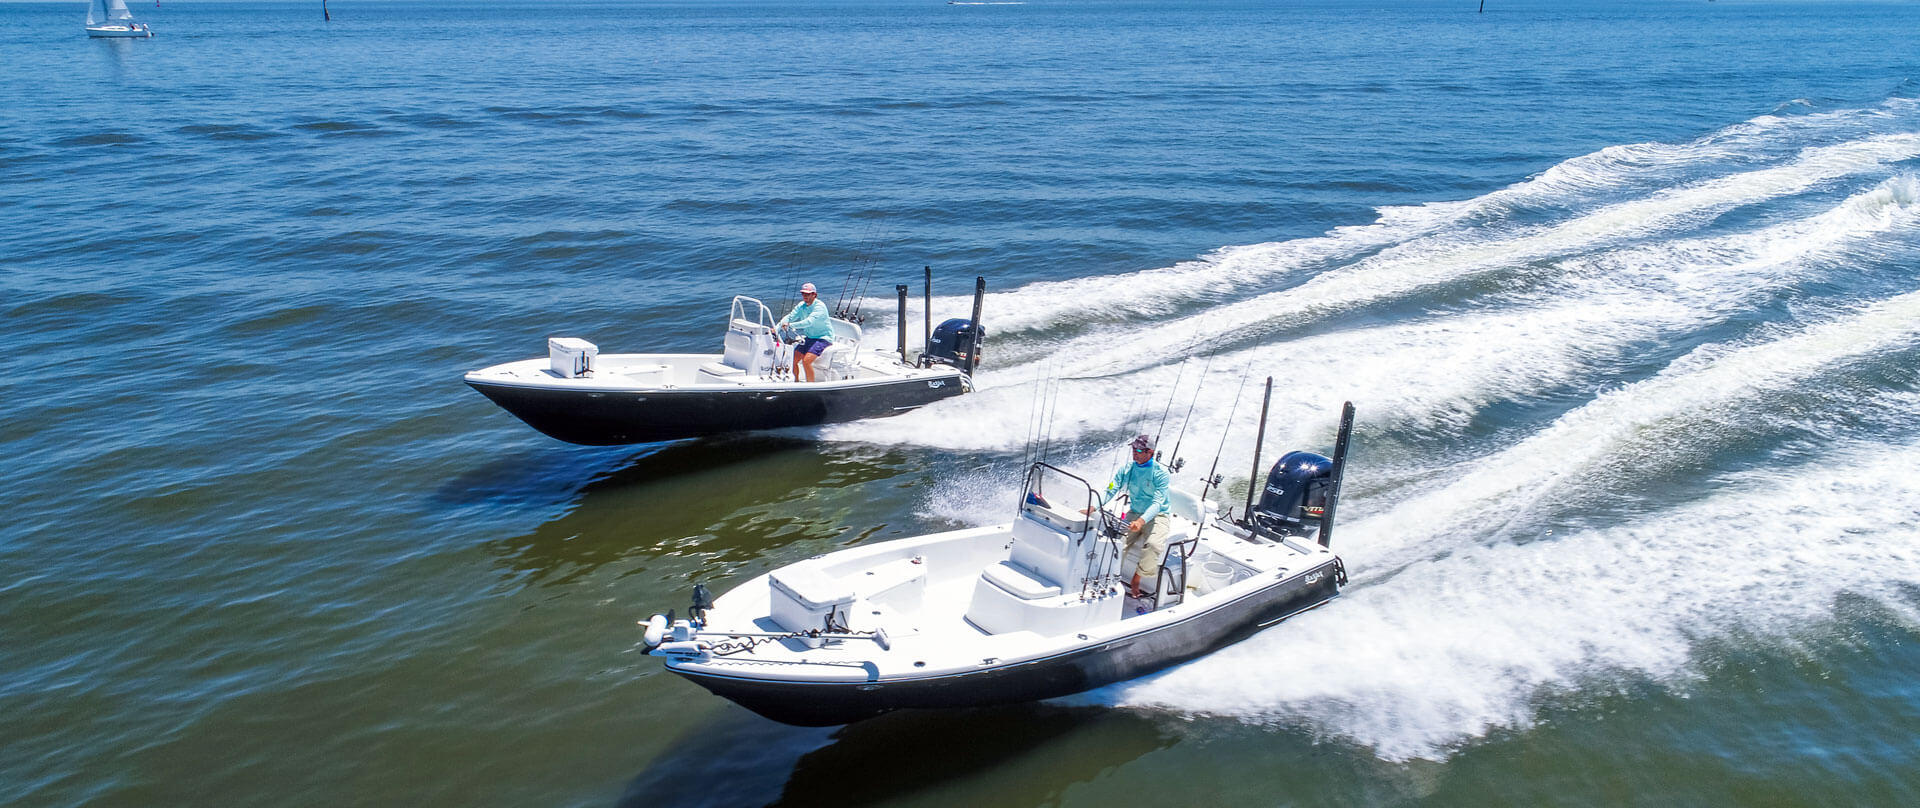 BlackJack-Boats-classic-style-high-performance-slider